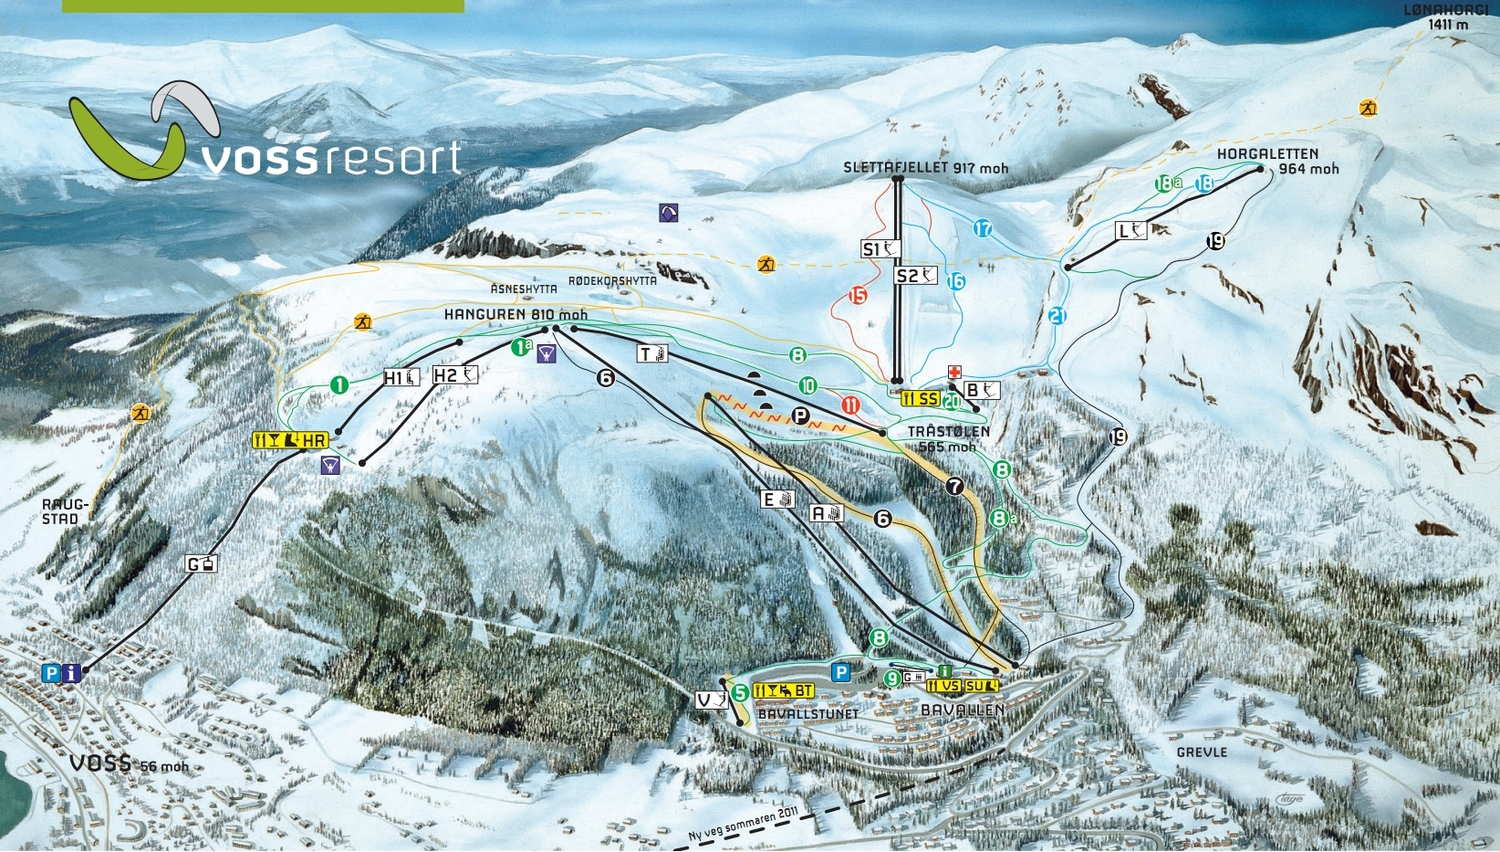 Skiline General Info About Ski Resort Voss Resort AS - Norway map voss